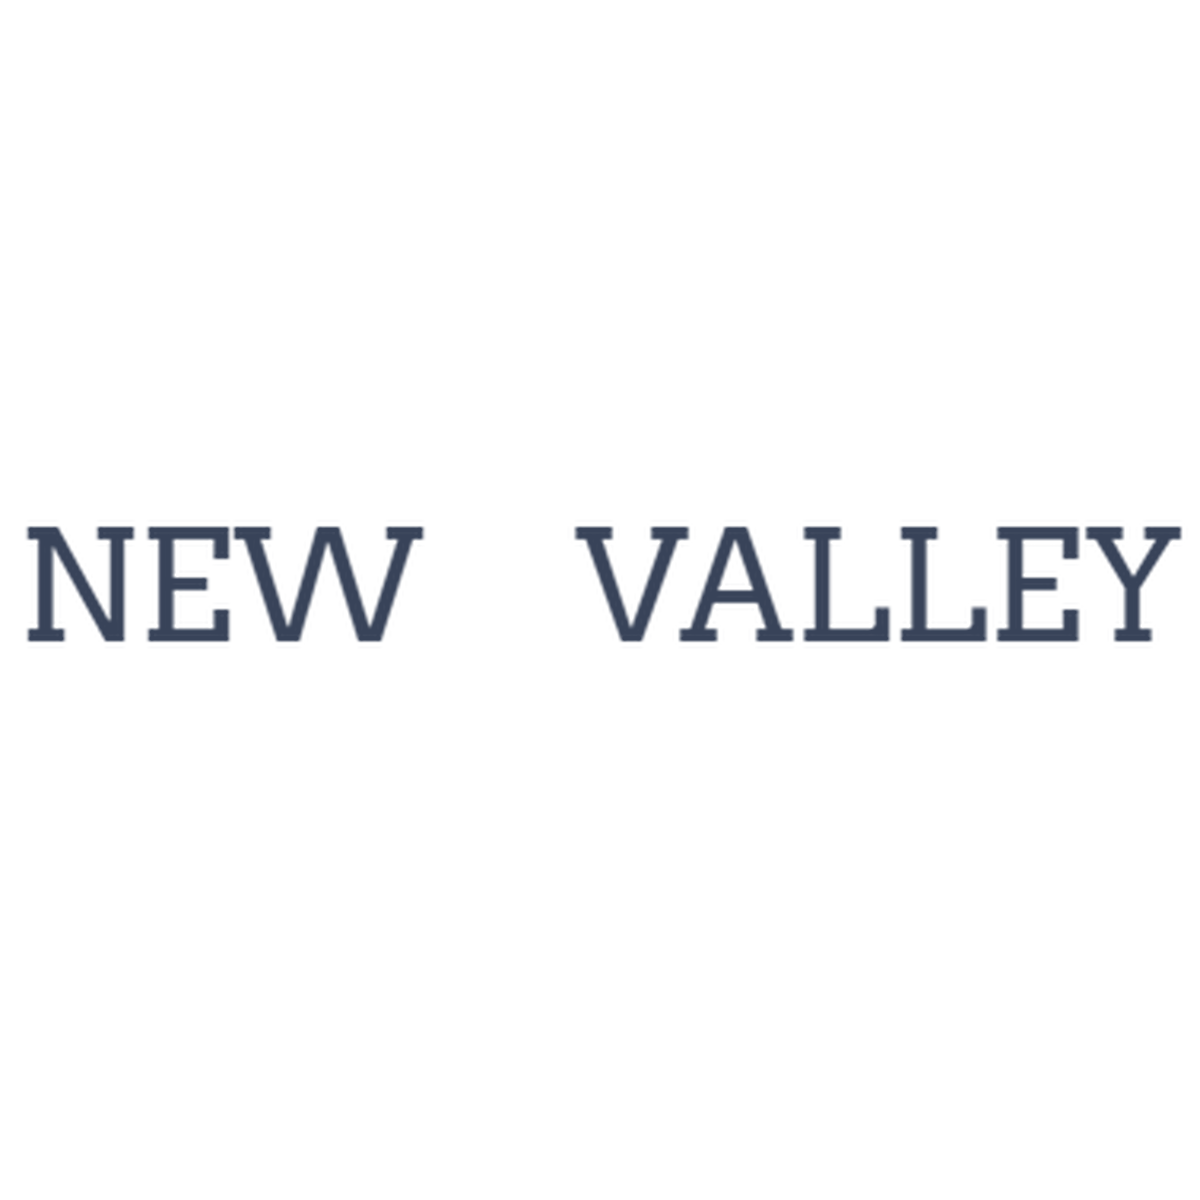 NEW VALLEY(ニューヴァレー)ワイン・通販・ナチュール・二子玉川 powered by BASE